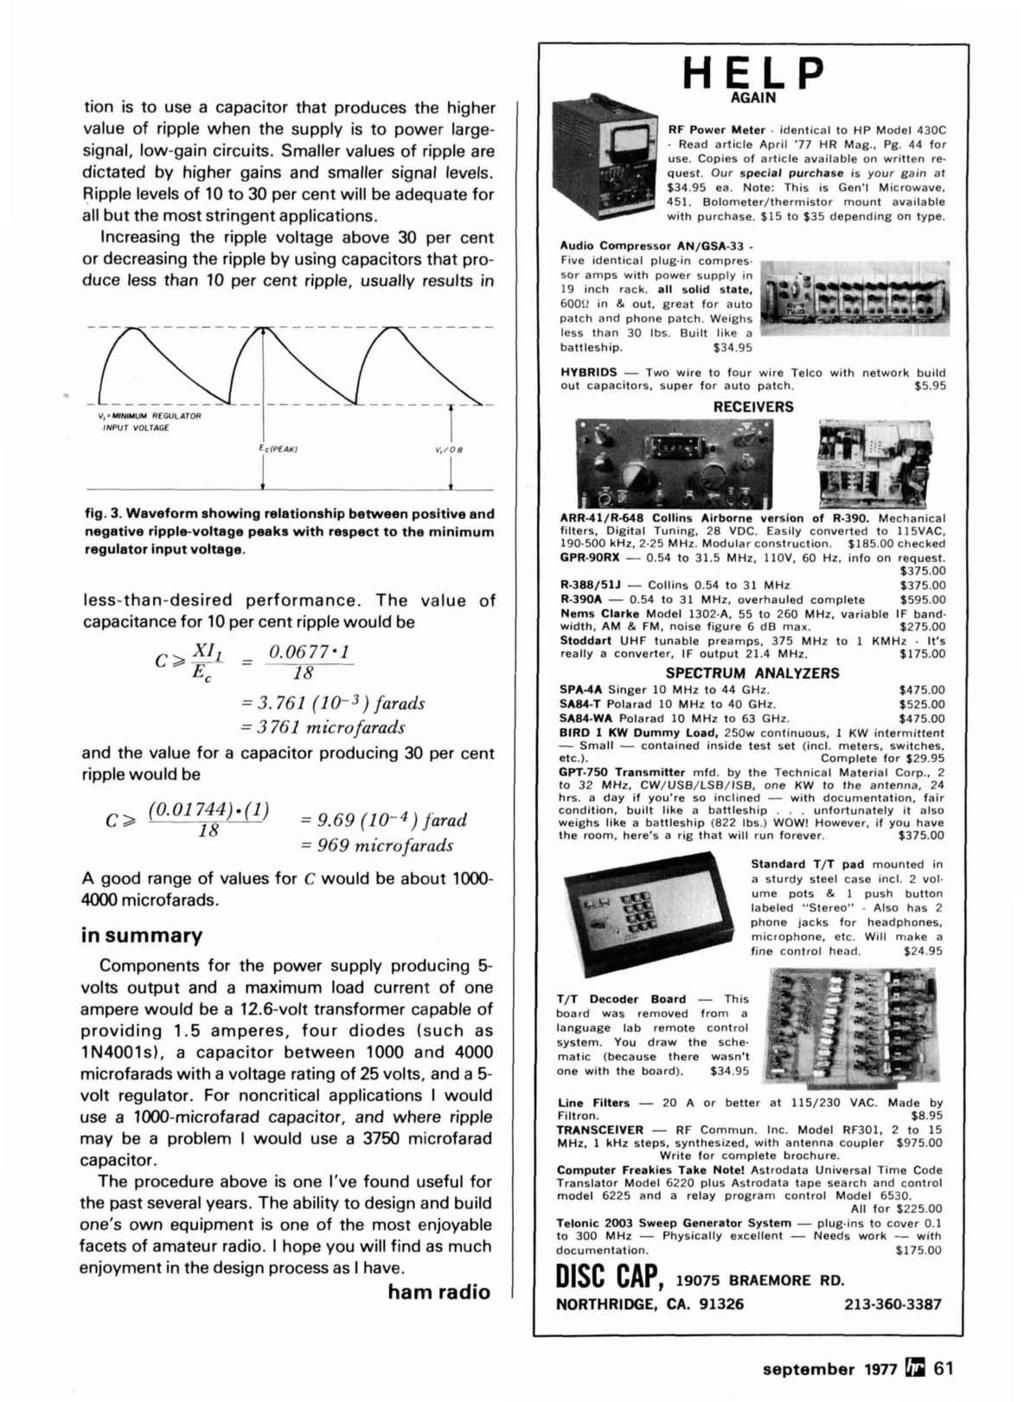 Radio September 1977 Frequency Synthesizer 44 Pi Network Design Meters Scanners Circuit Breaker Finders Sperry Finder Tion Is To Use A Capacitor That Produces The Higher Value Of Ripple When Supply